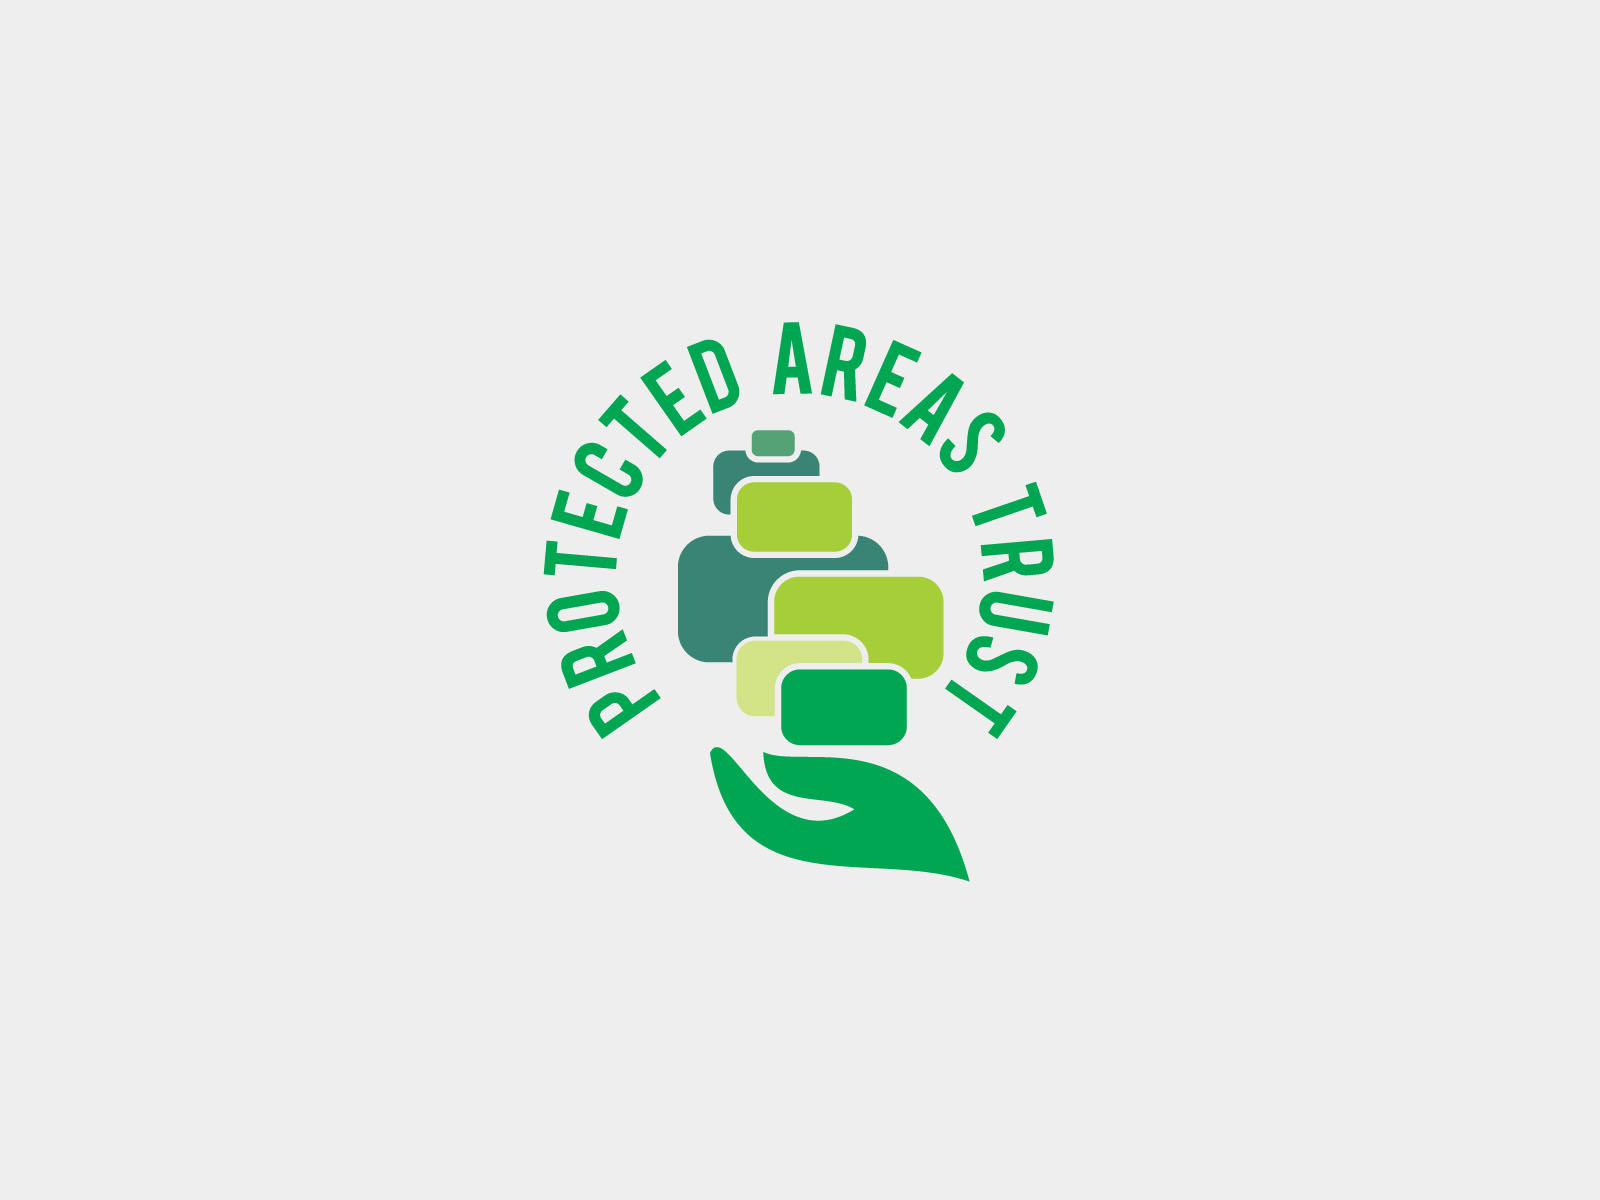 Protected Areas Trust